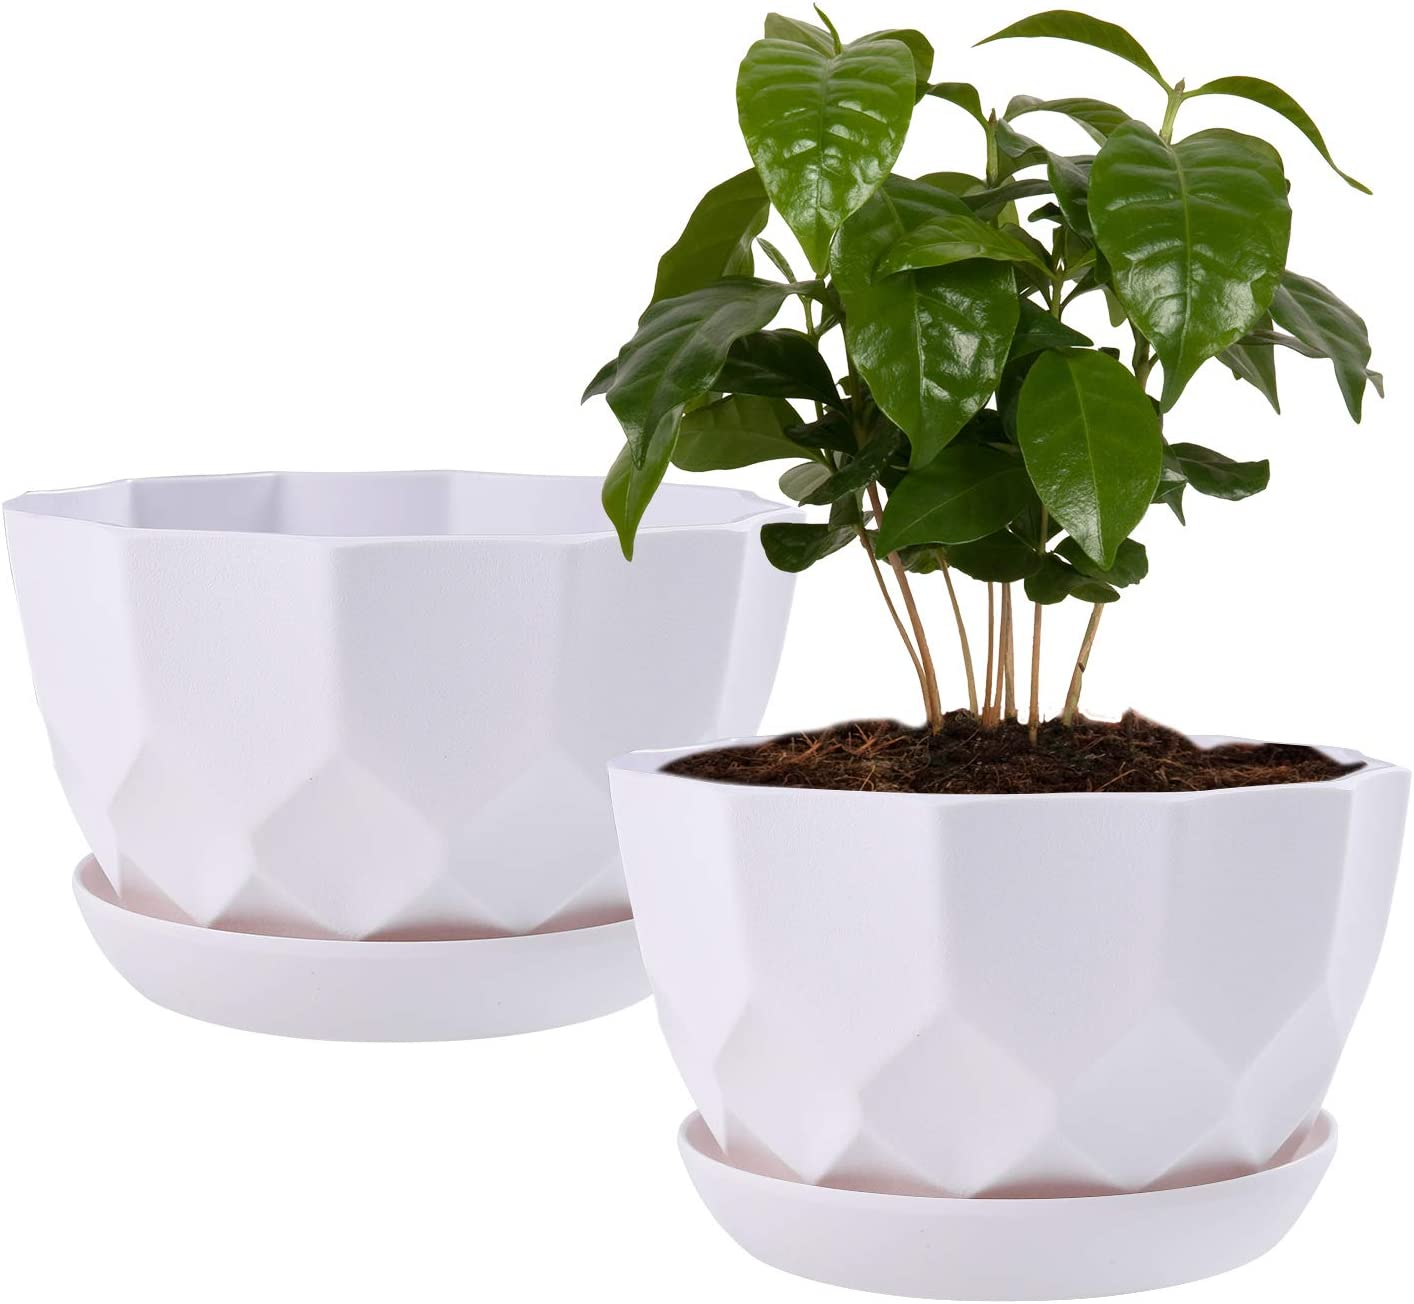 7 Inch Plant Flower Pots Indoor Plastic Planters with Drainage Hole Set of 2 Modern Planting Pots Great for Plants, Herbs, African Violets, Foliage Plants, Crafts Home Decorations (White)